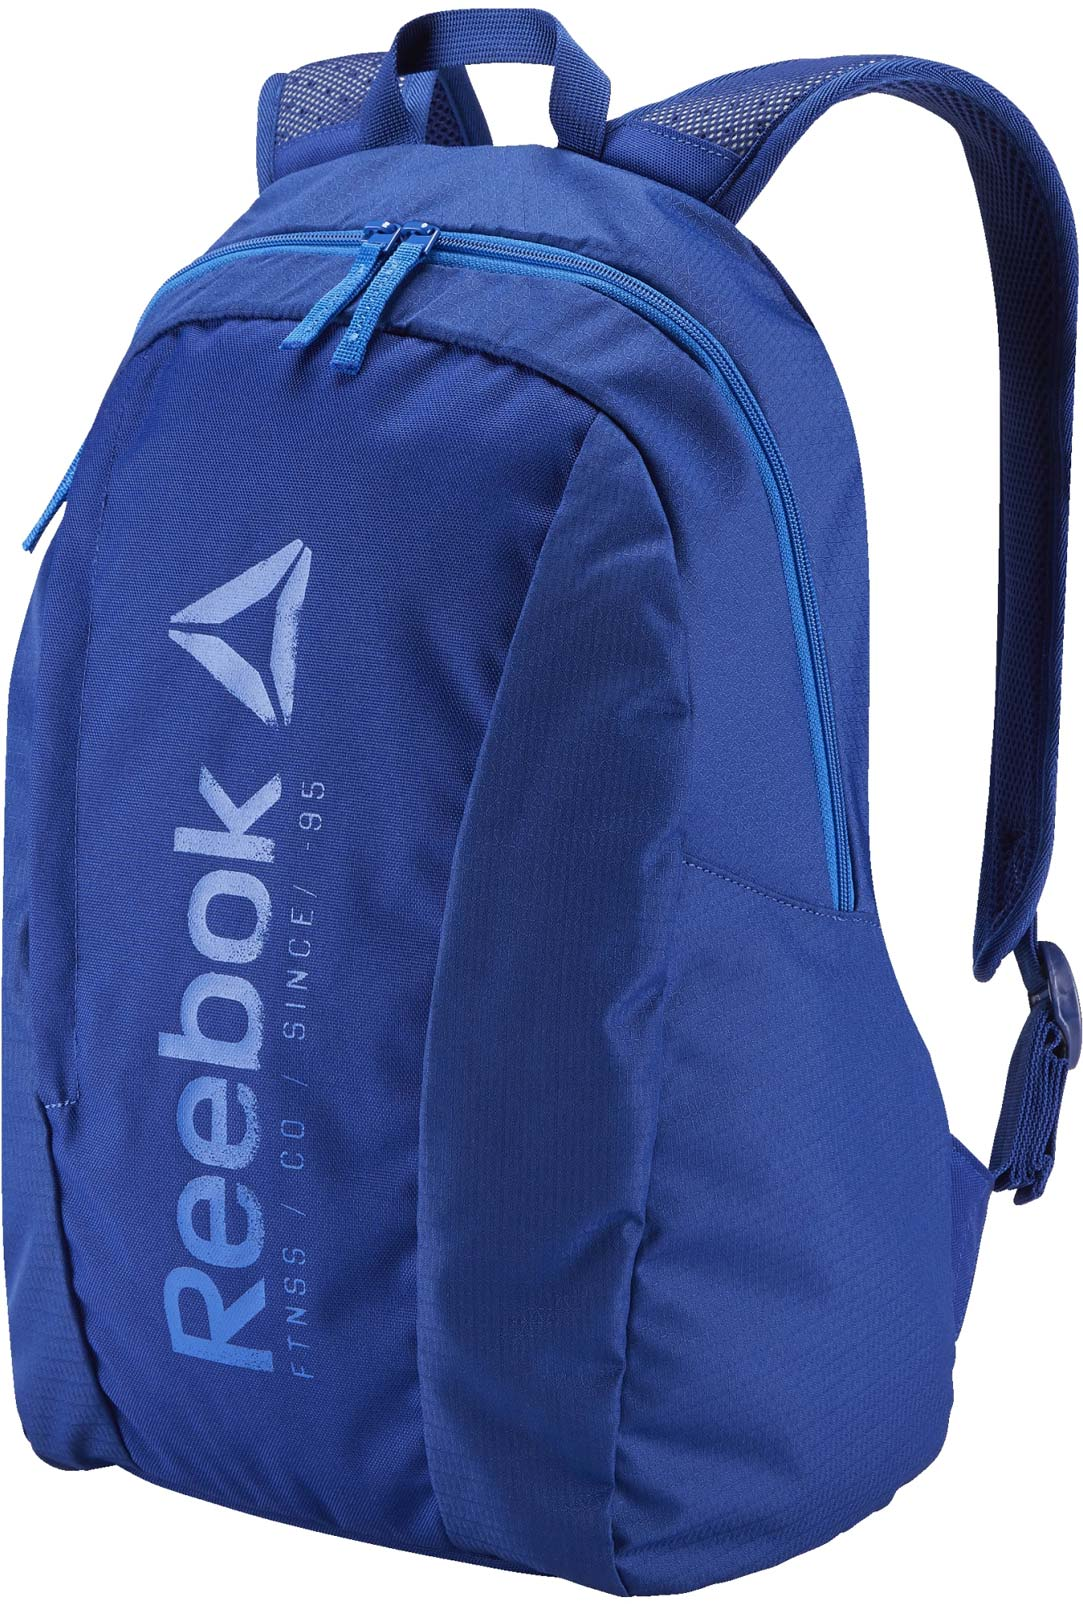 2d9eff4f75 Reebok FOUNDATION MEDIUM BPK. Backpack